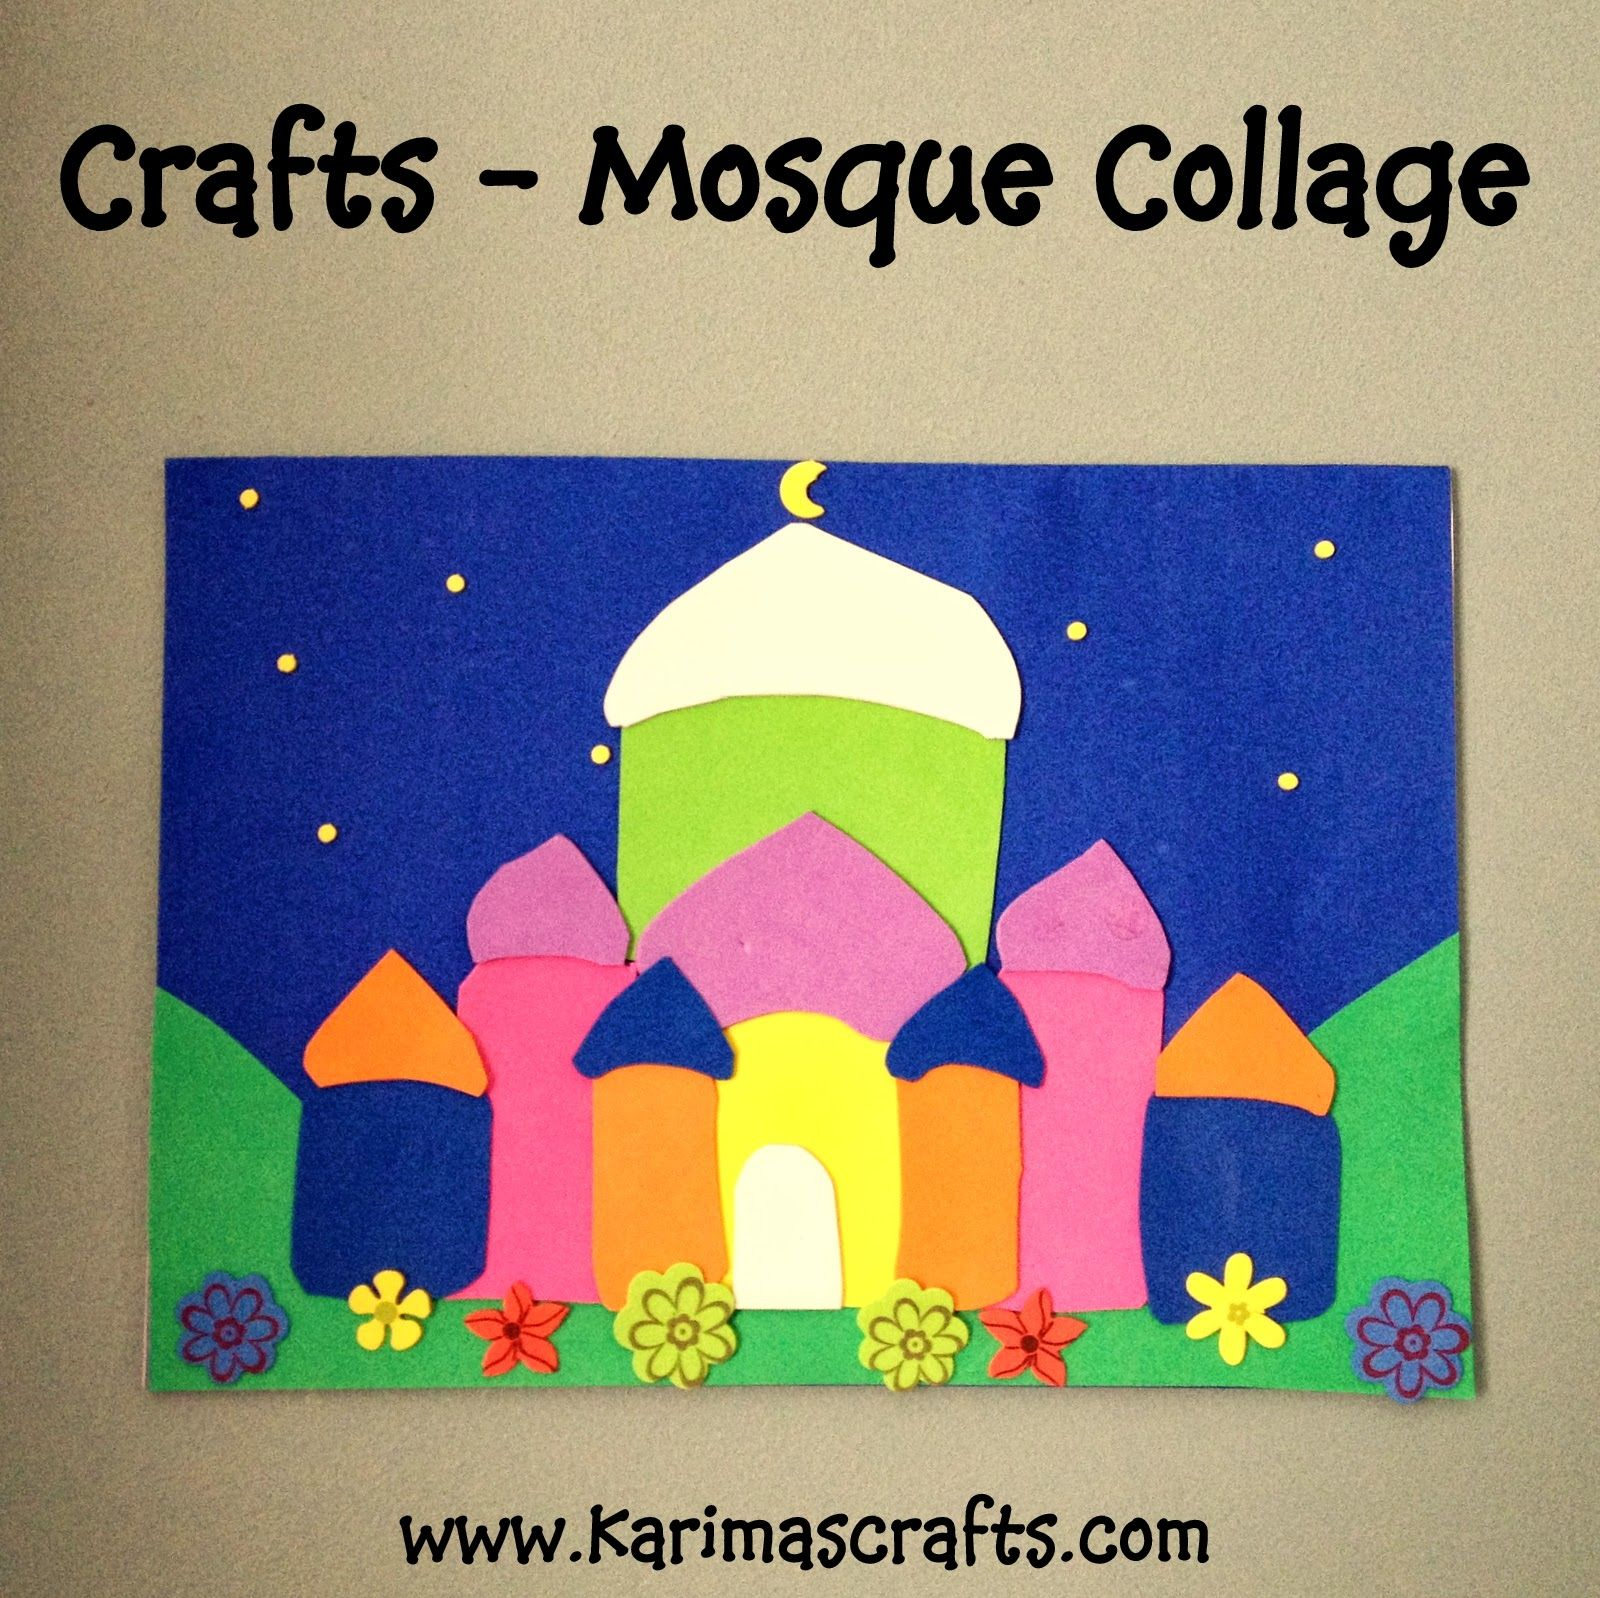 Karima   crafts mosque collage days of ramadan islamic muslim activities also best middle east educational images on pinterest kid rh